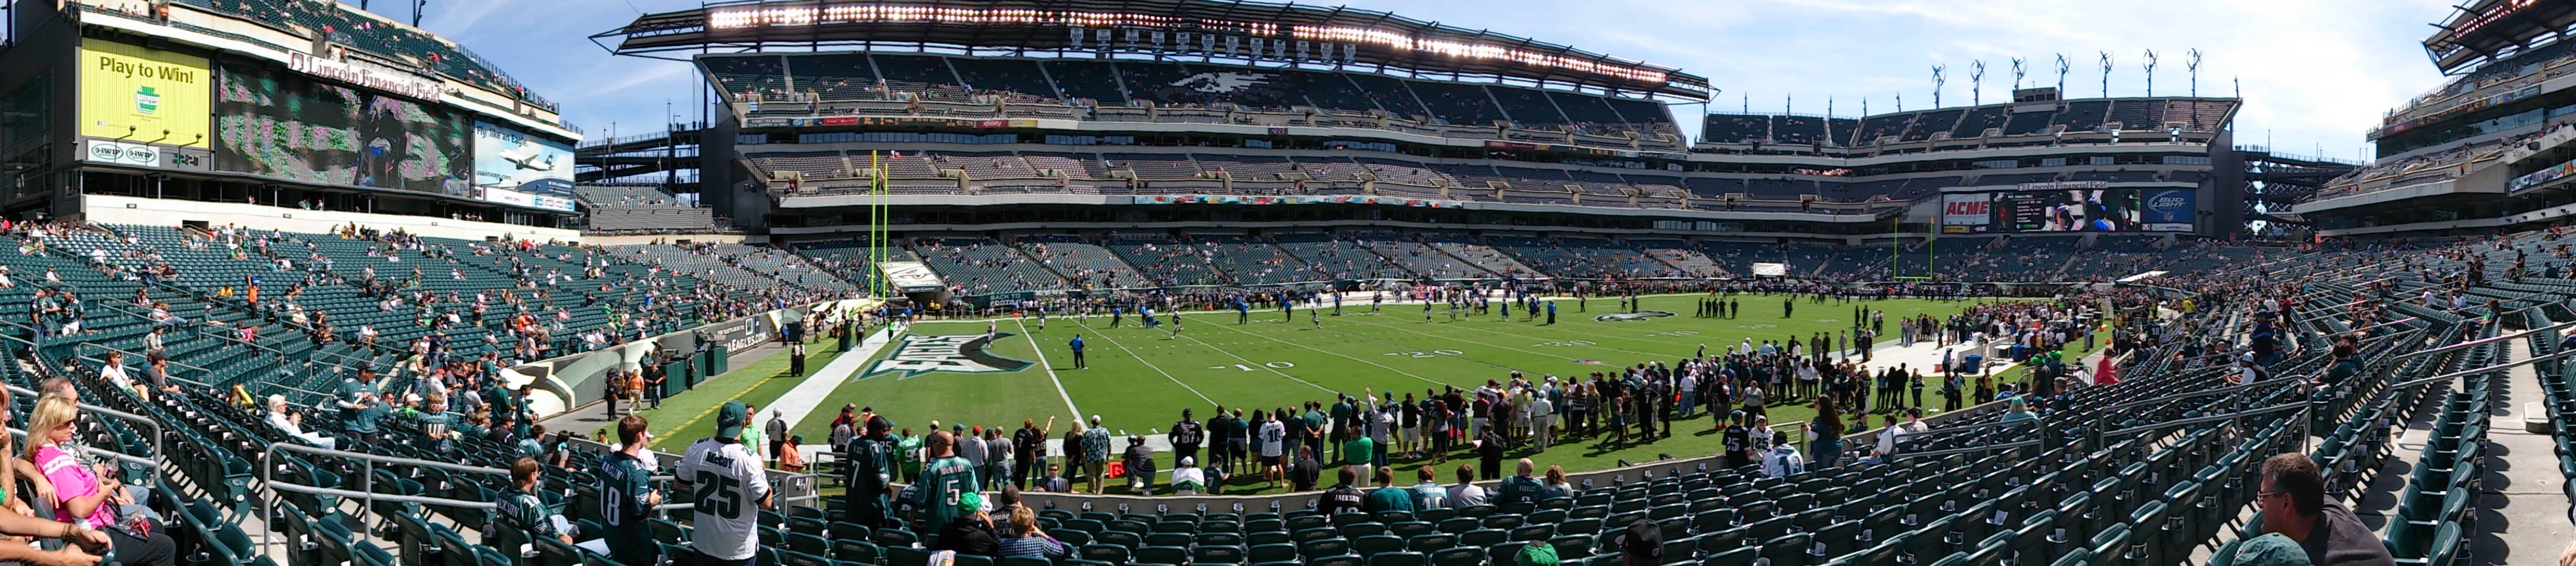 Lincoln Financial Field Section 135 Philadelphia Eagles